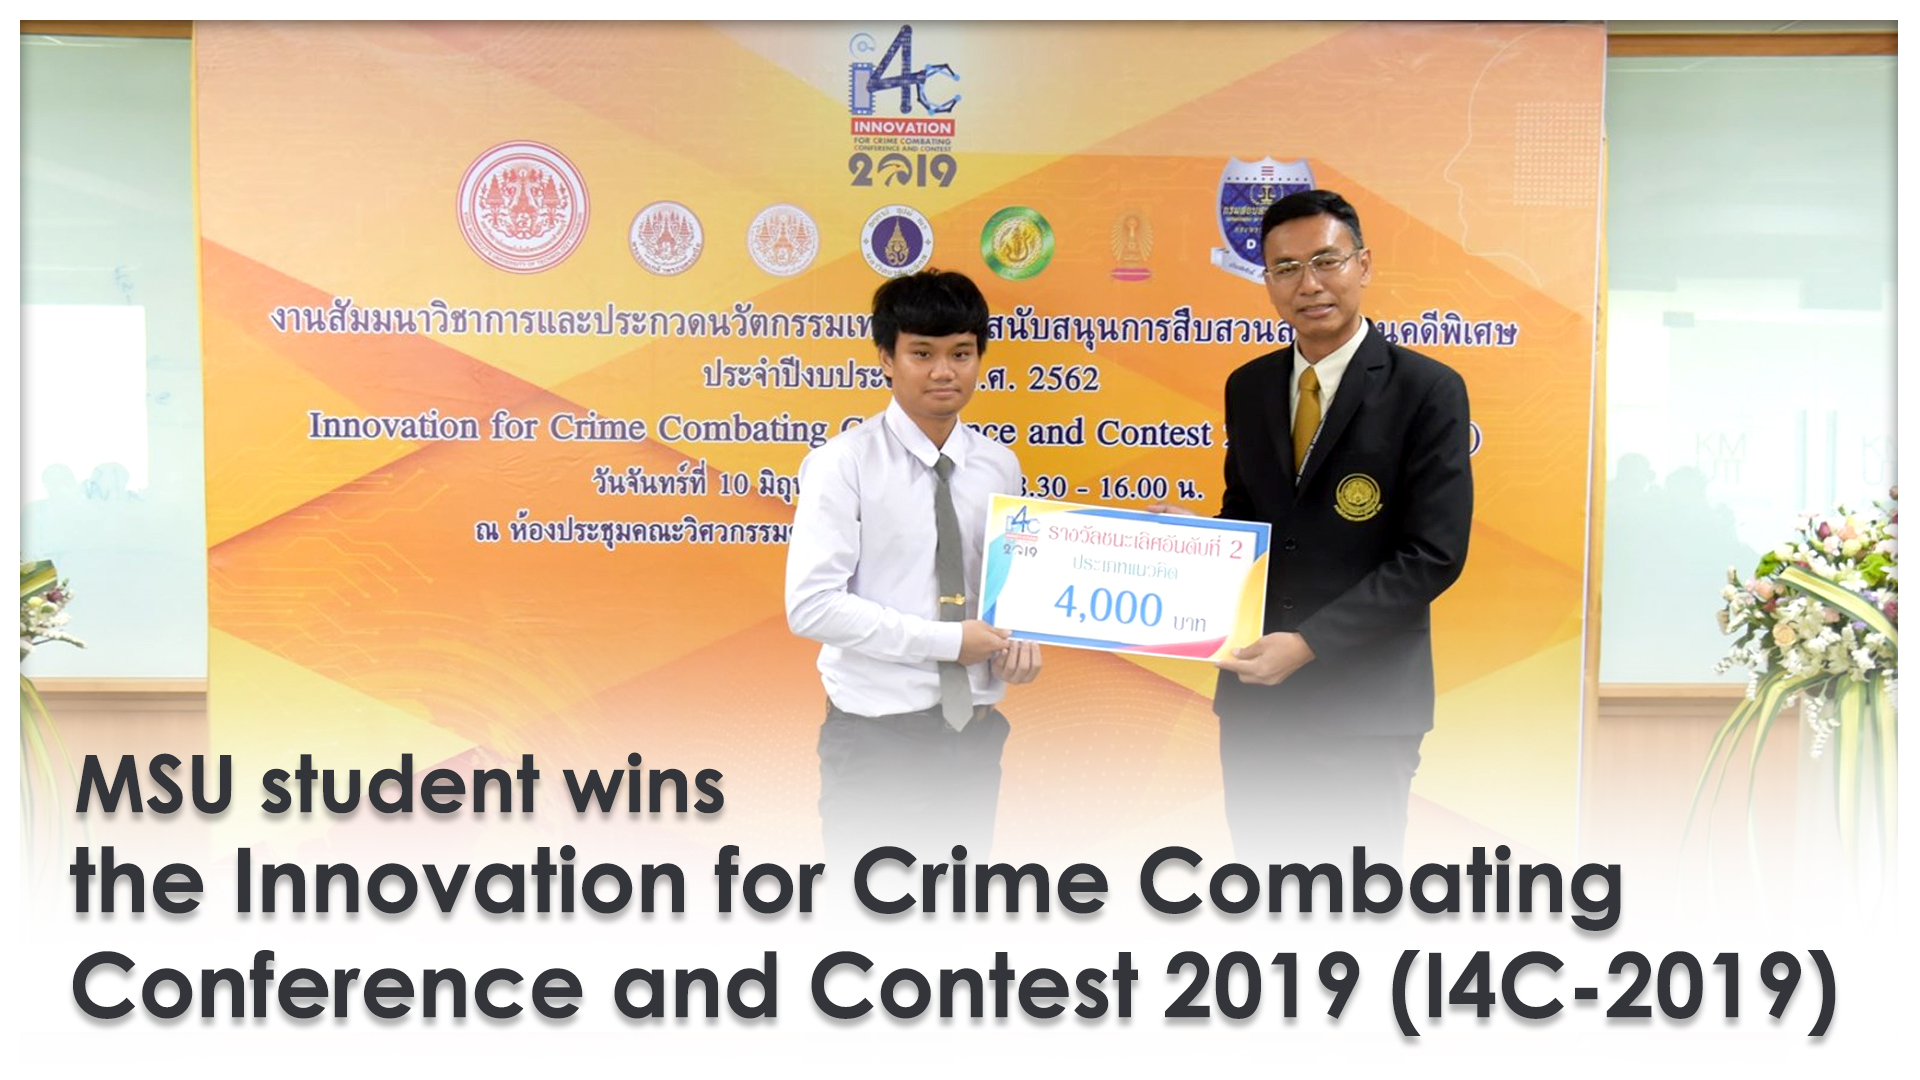 MSU student wins the Innovation for Crime Combating Conference and Contest 2019 (I4C-2019)